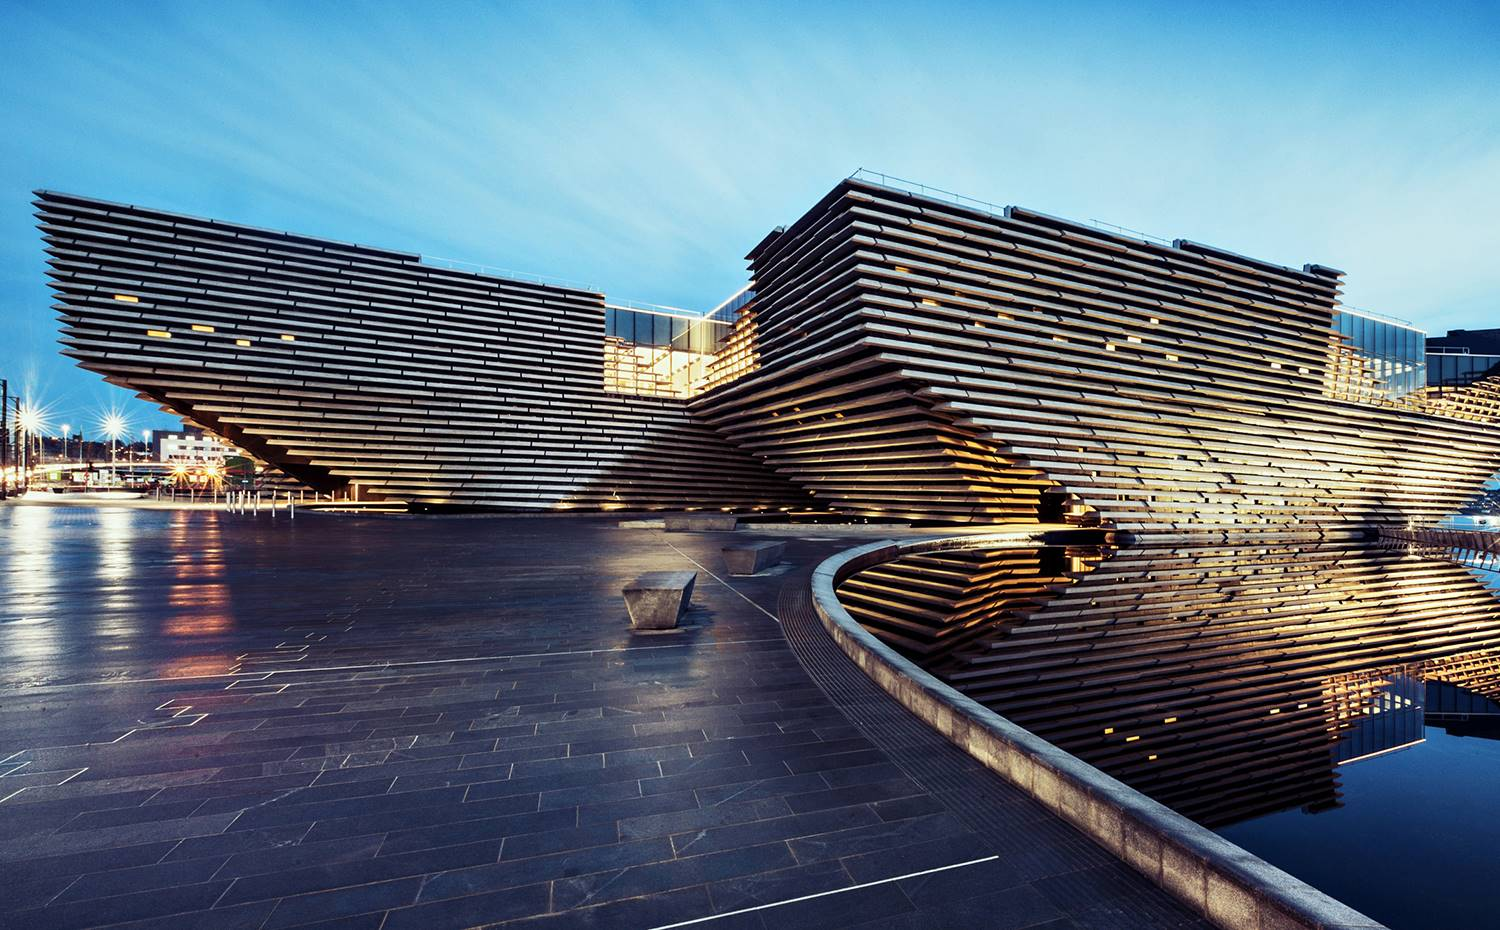 2 2000x1125PV A Dundee Ross Fraser McLean10. [06] V&A Dundee (Escocia)